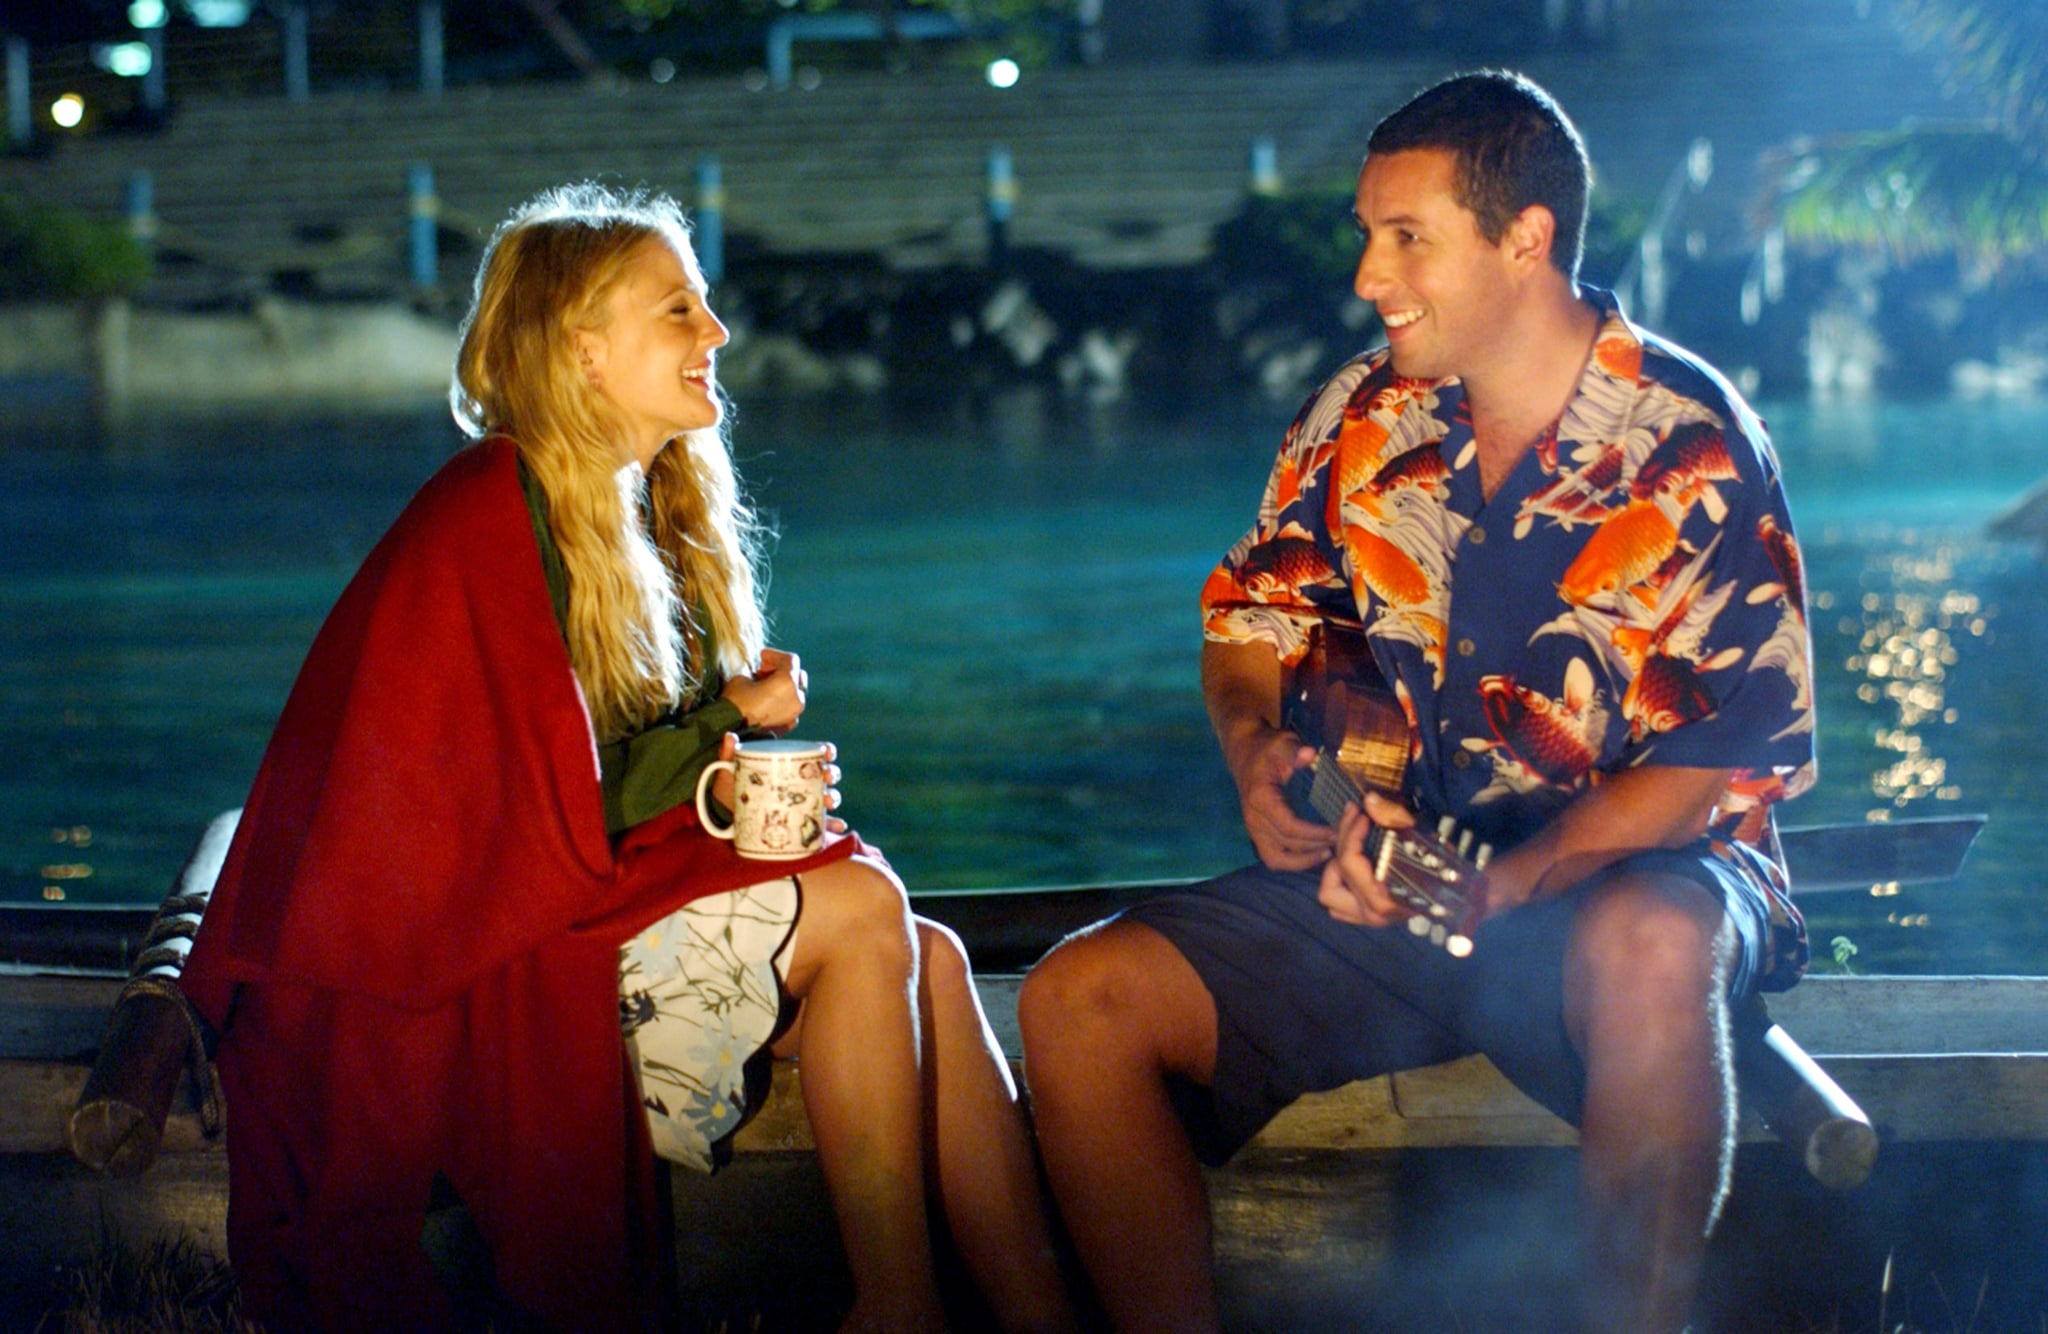 50 First Dates | 65 New Titles Coming to Netflix in March That Will Keep You Entertained All Month Long | POPSUGAR Entertainment Photo 61